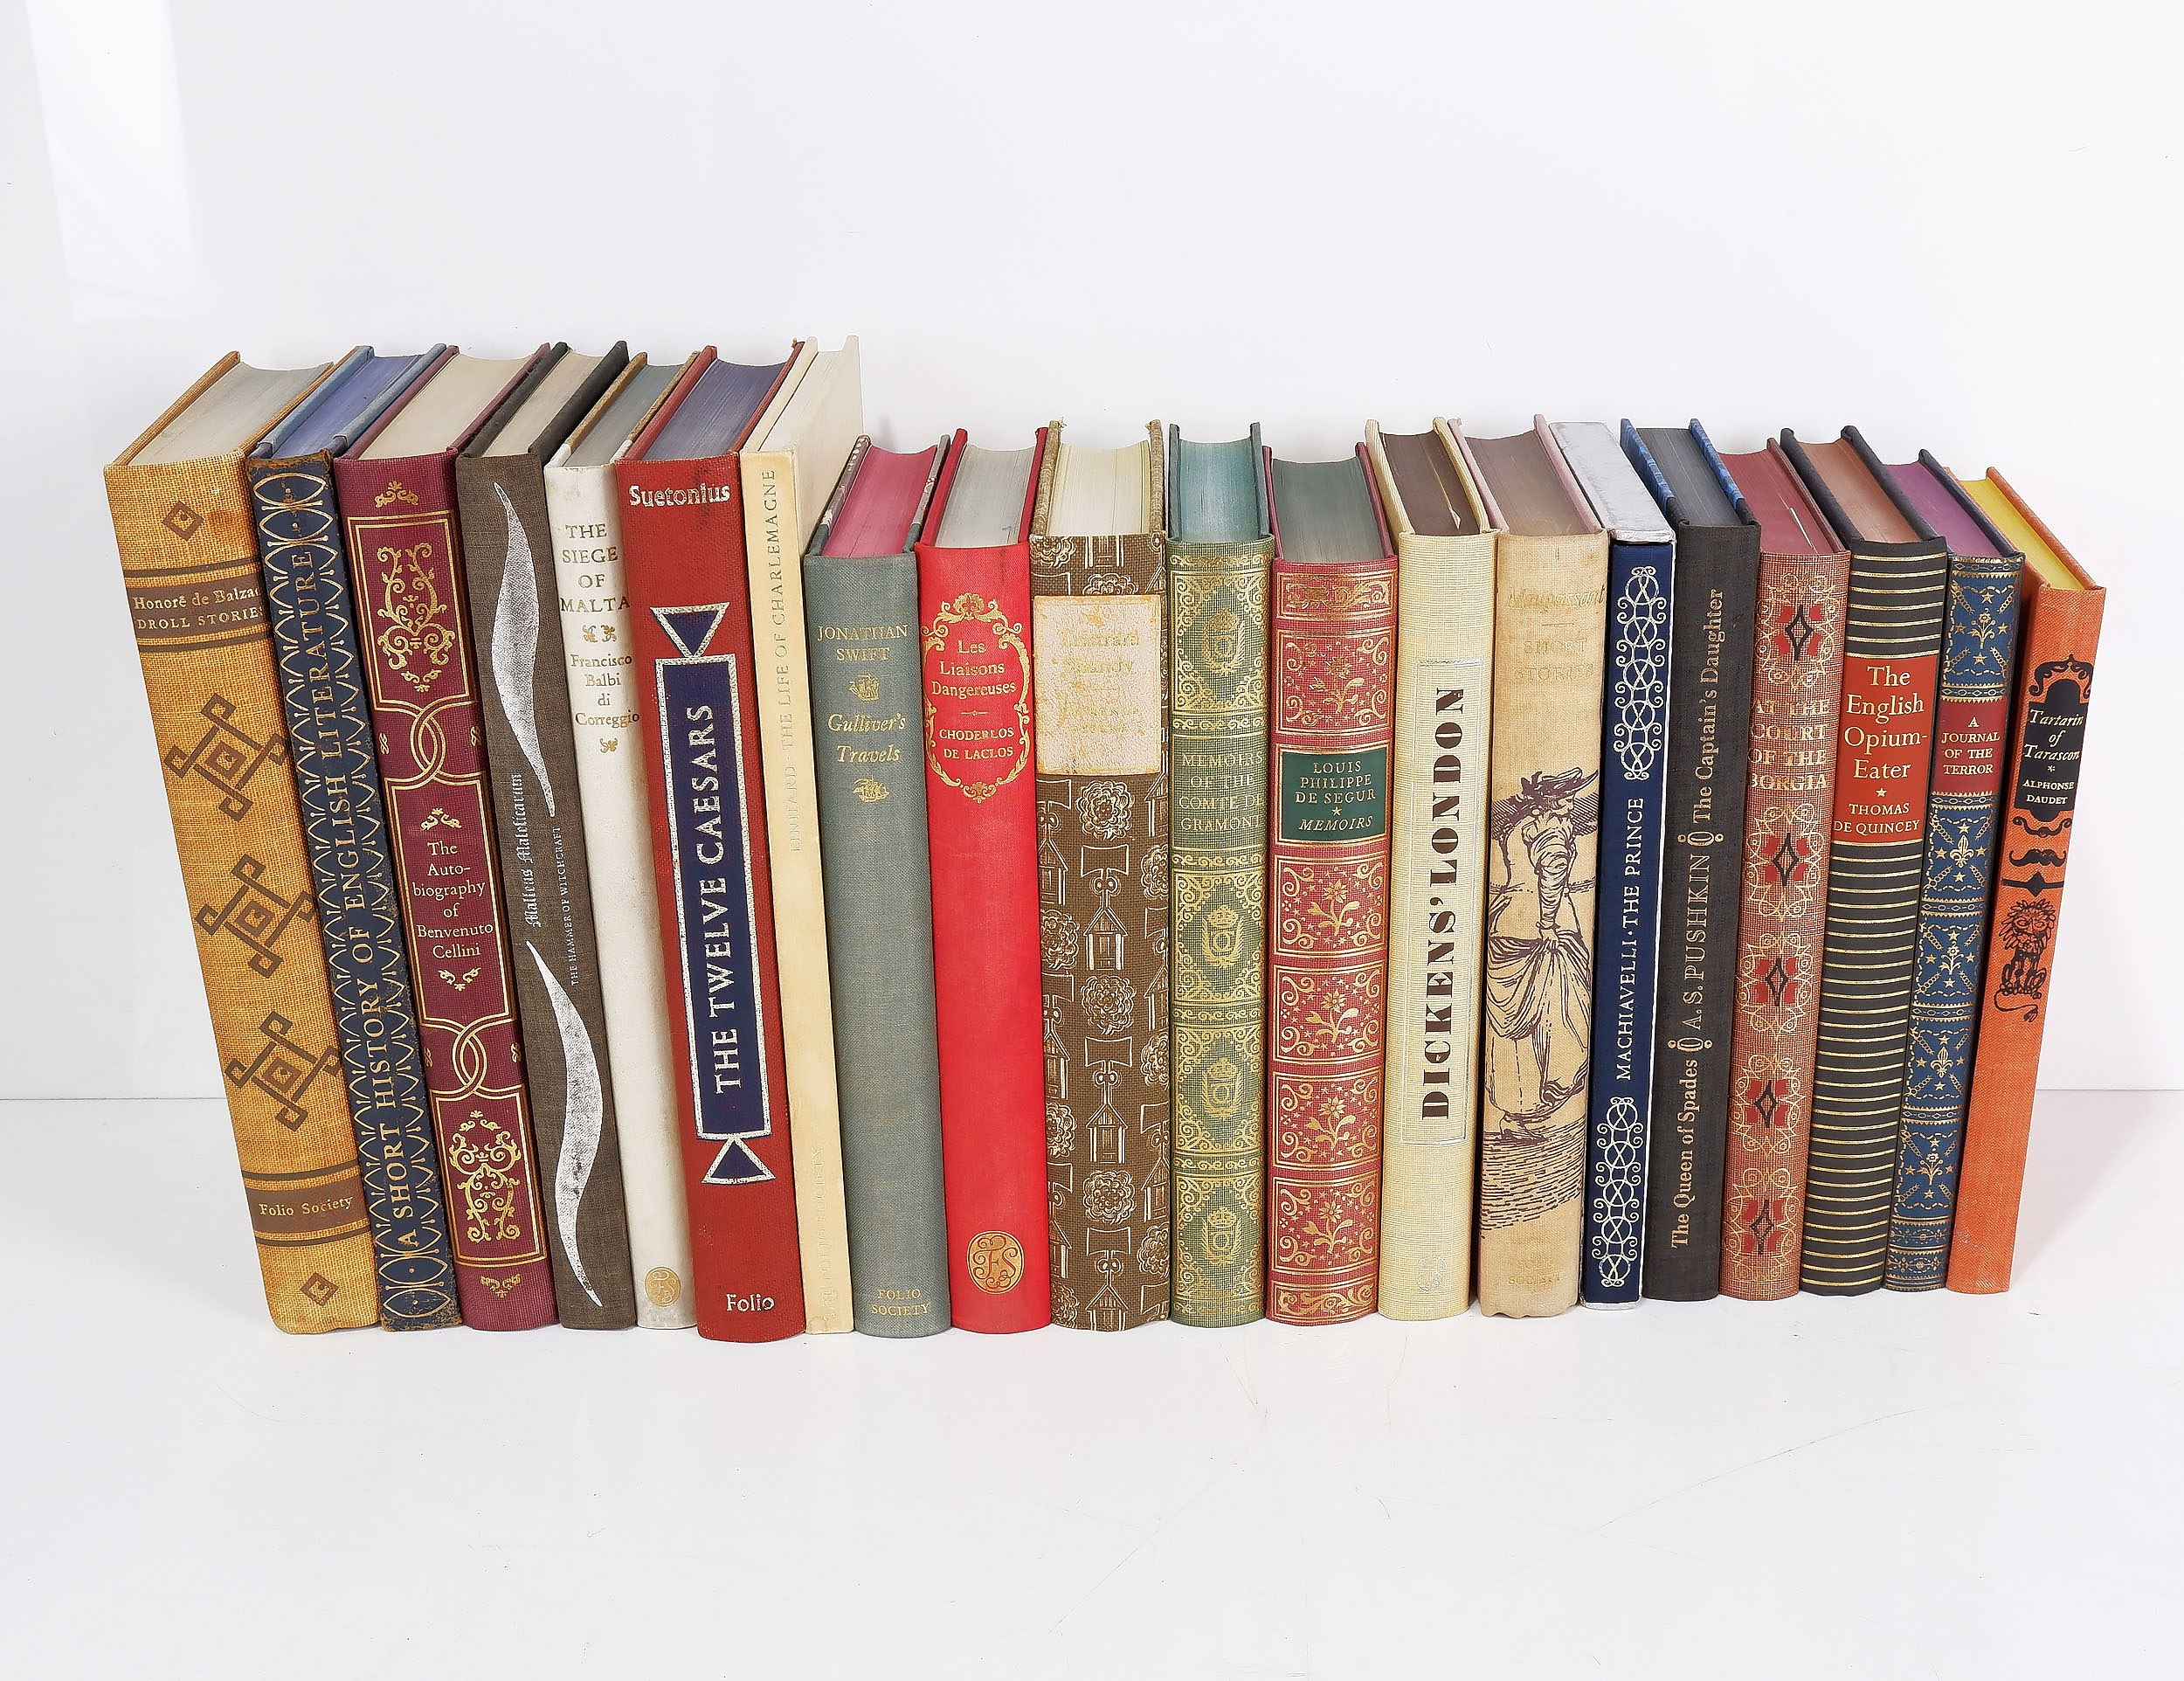 'Twenty Various The Folio Society Books Including The Twelve Caesars, Dickens London, A Short History of English Literature, The English Opium Eater and More'